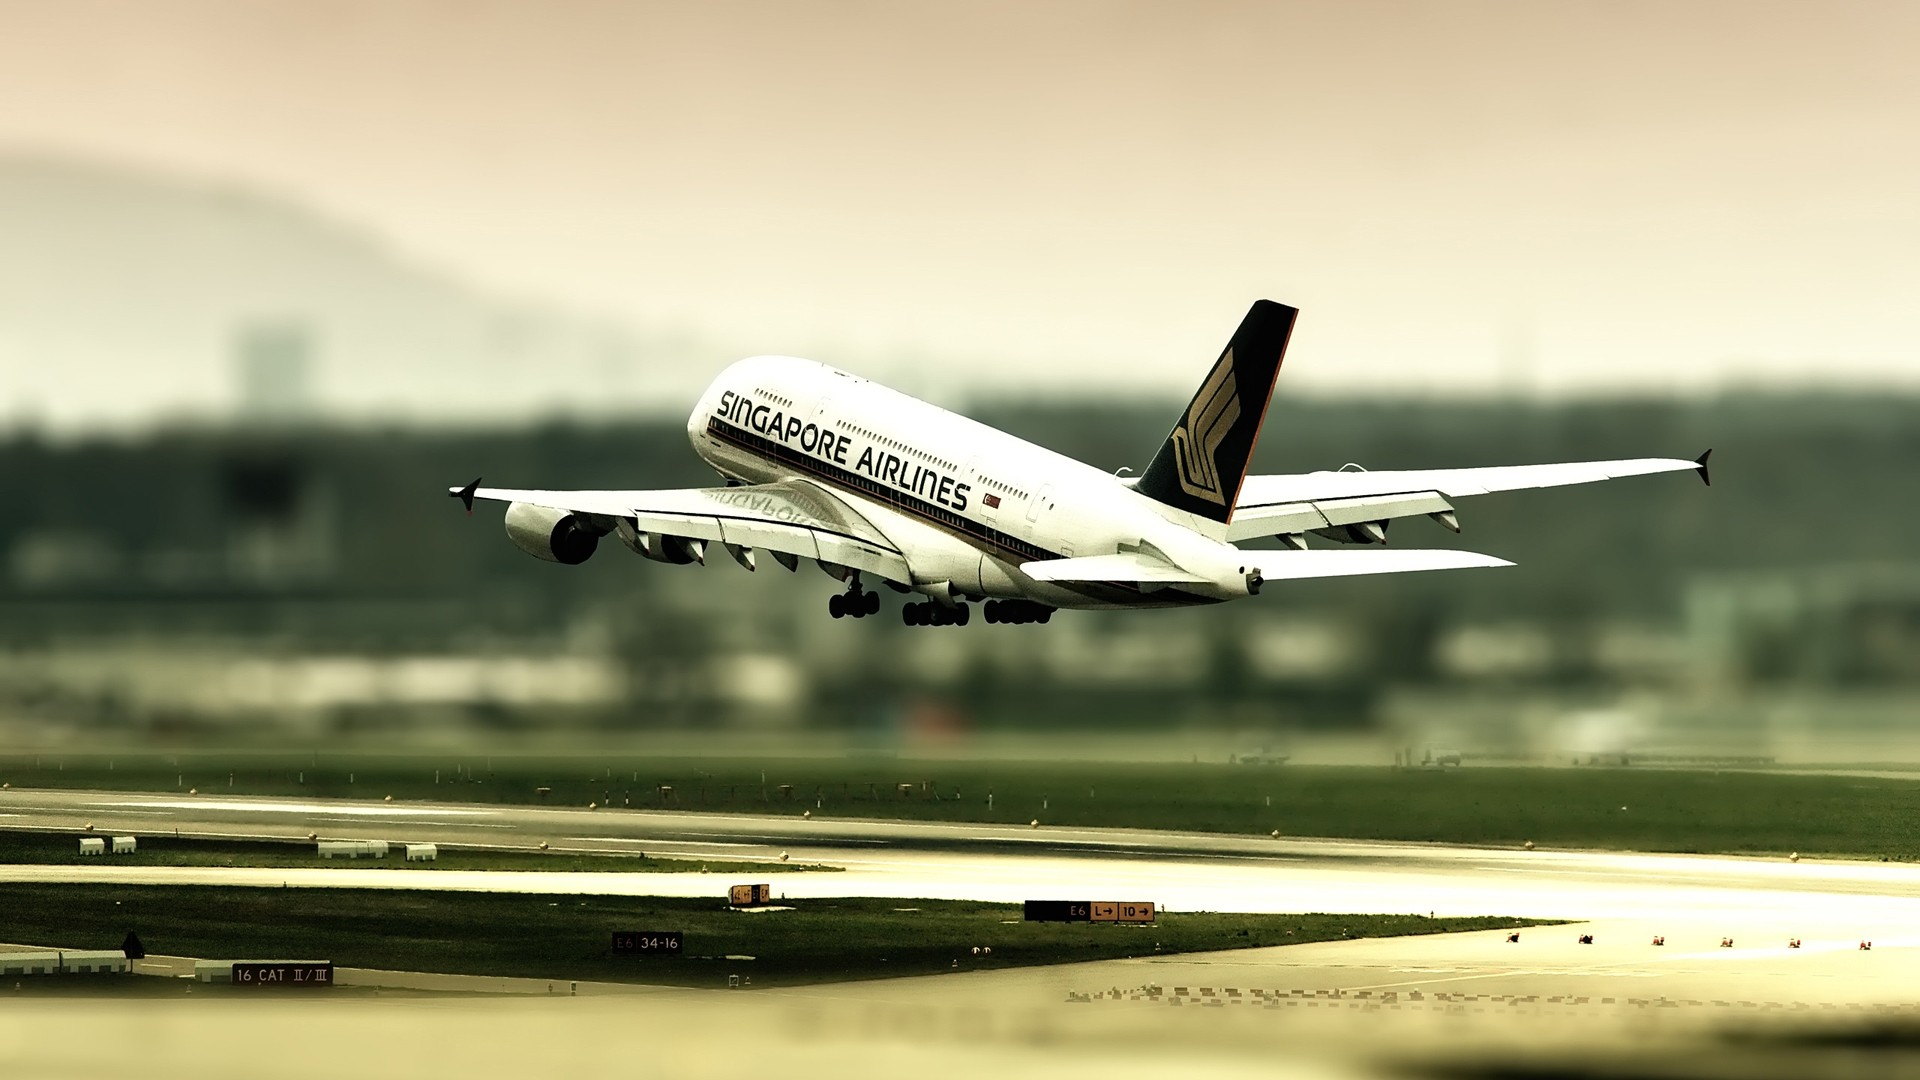 Singapore Airlines, the photo of a commercial aircraft on takeoff.